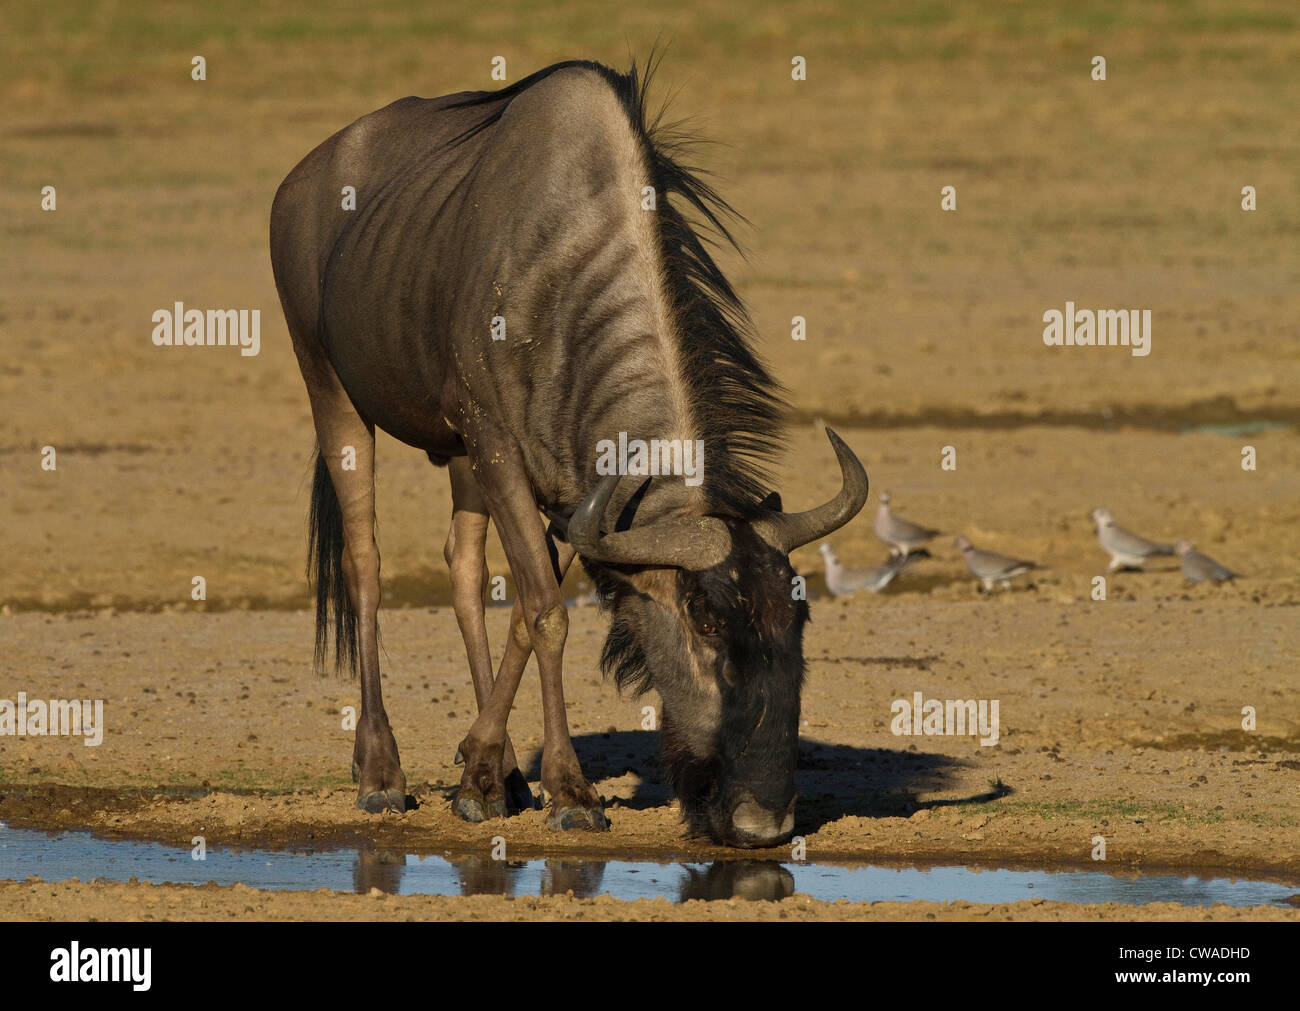 Wildebeest drinking, Kgalagadi Transfrontier Park, Africa - Stock Image